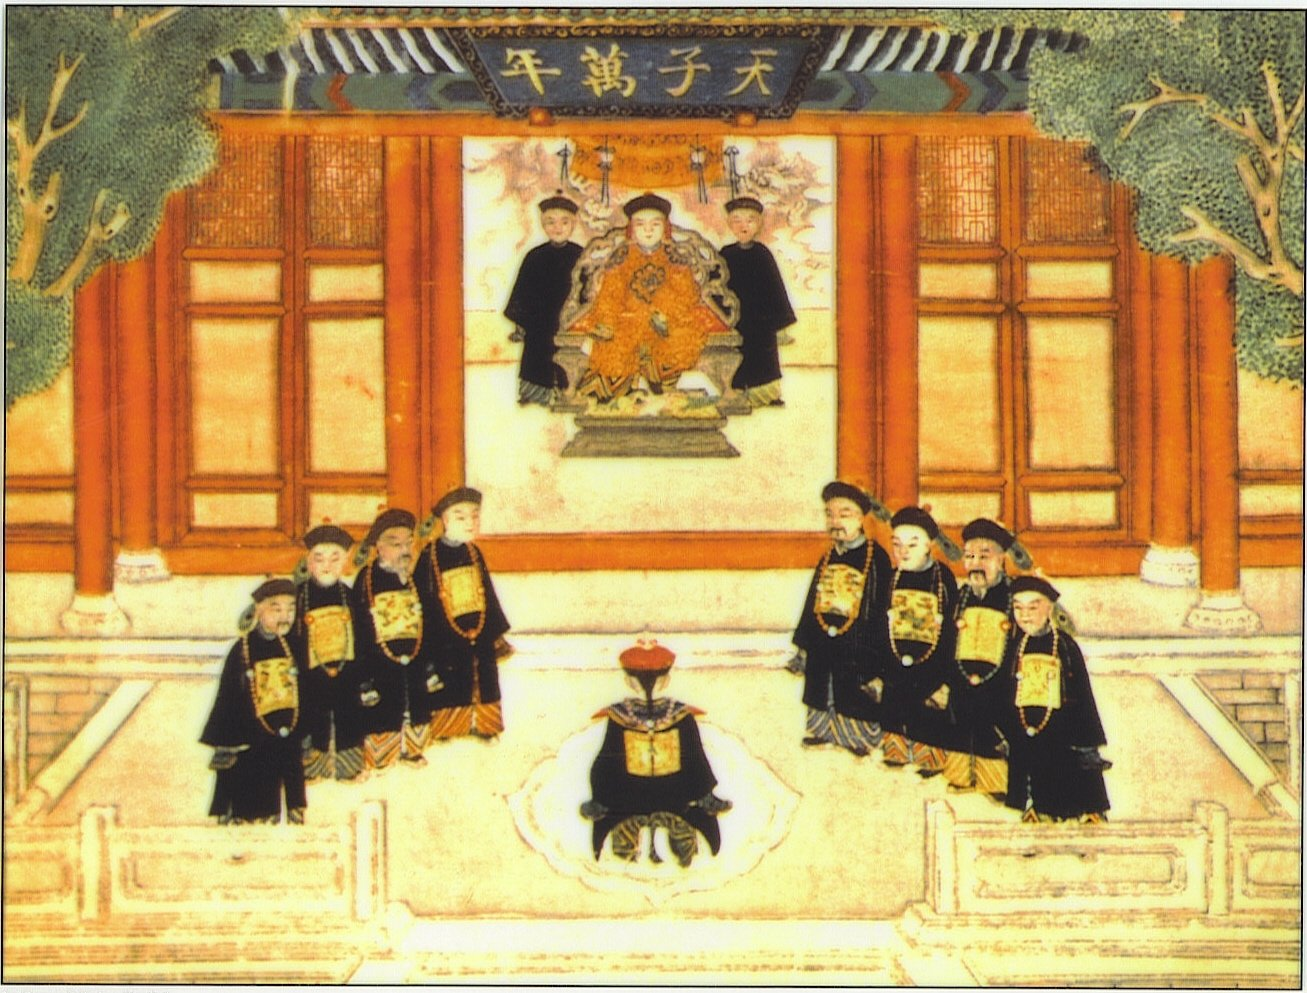 10 Attractive The Idea Of The Mandate Of Heaven Was the mad monarchist china and the heavenly mandate 2021